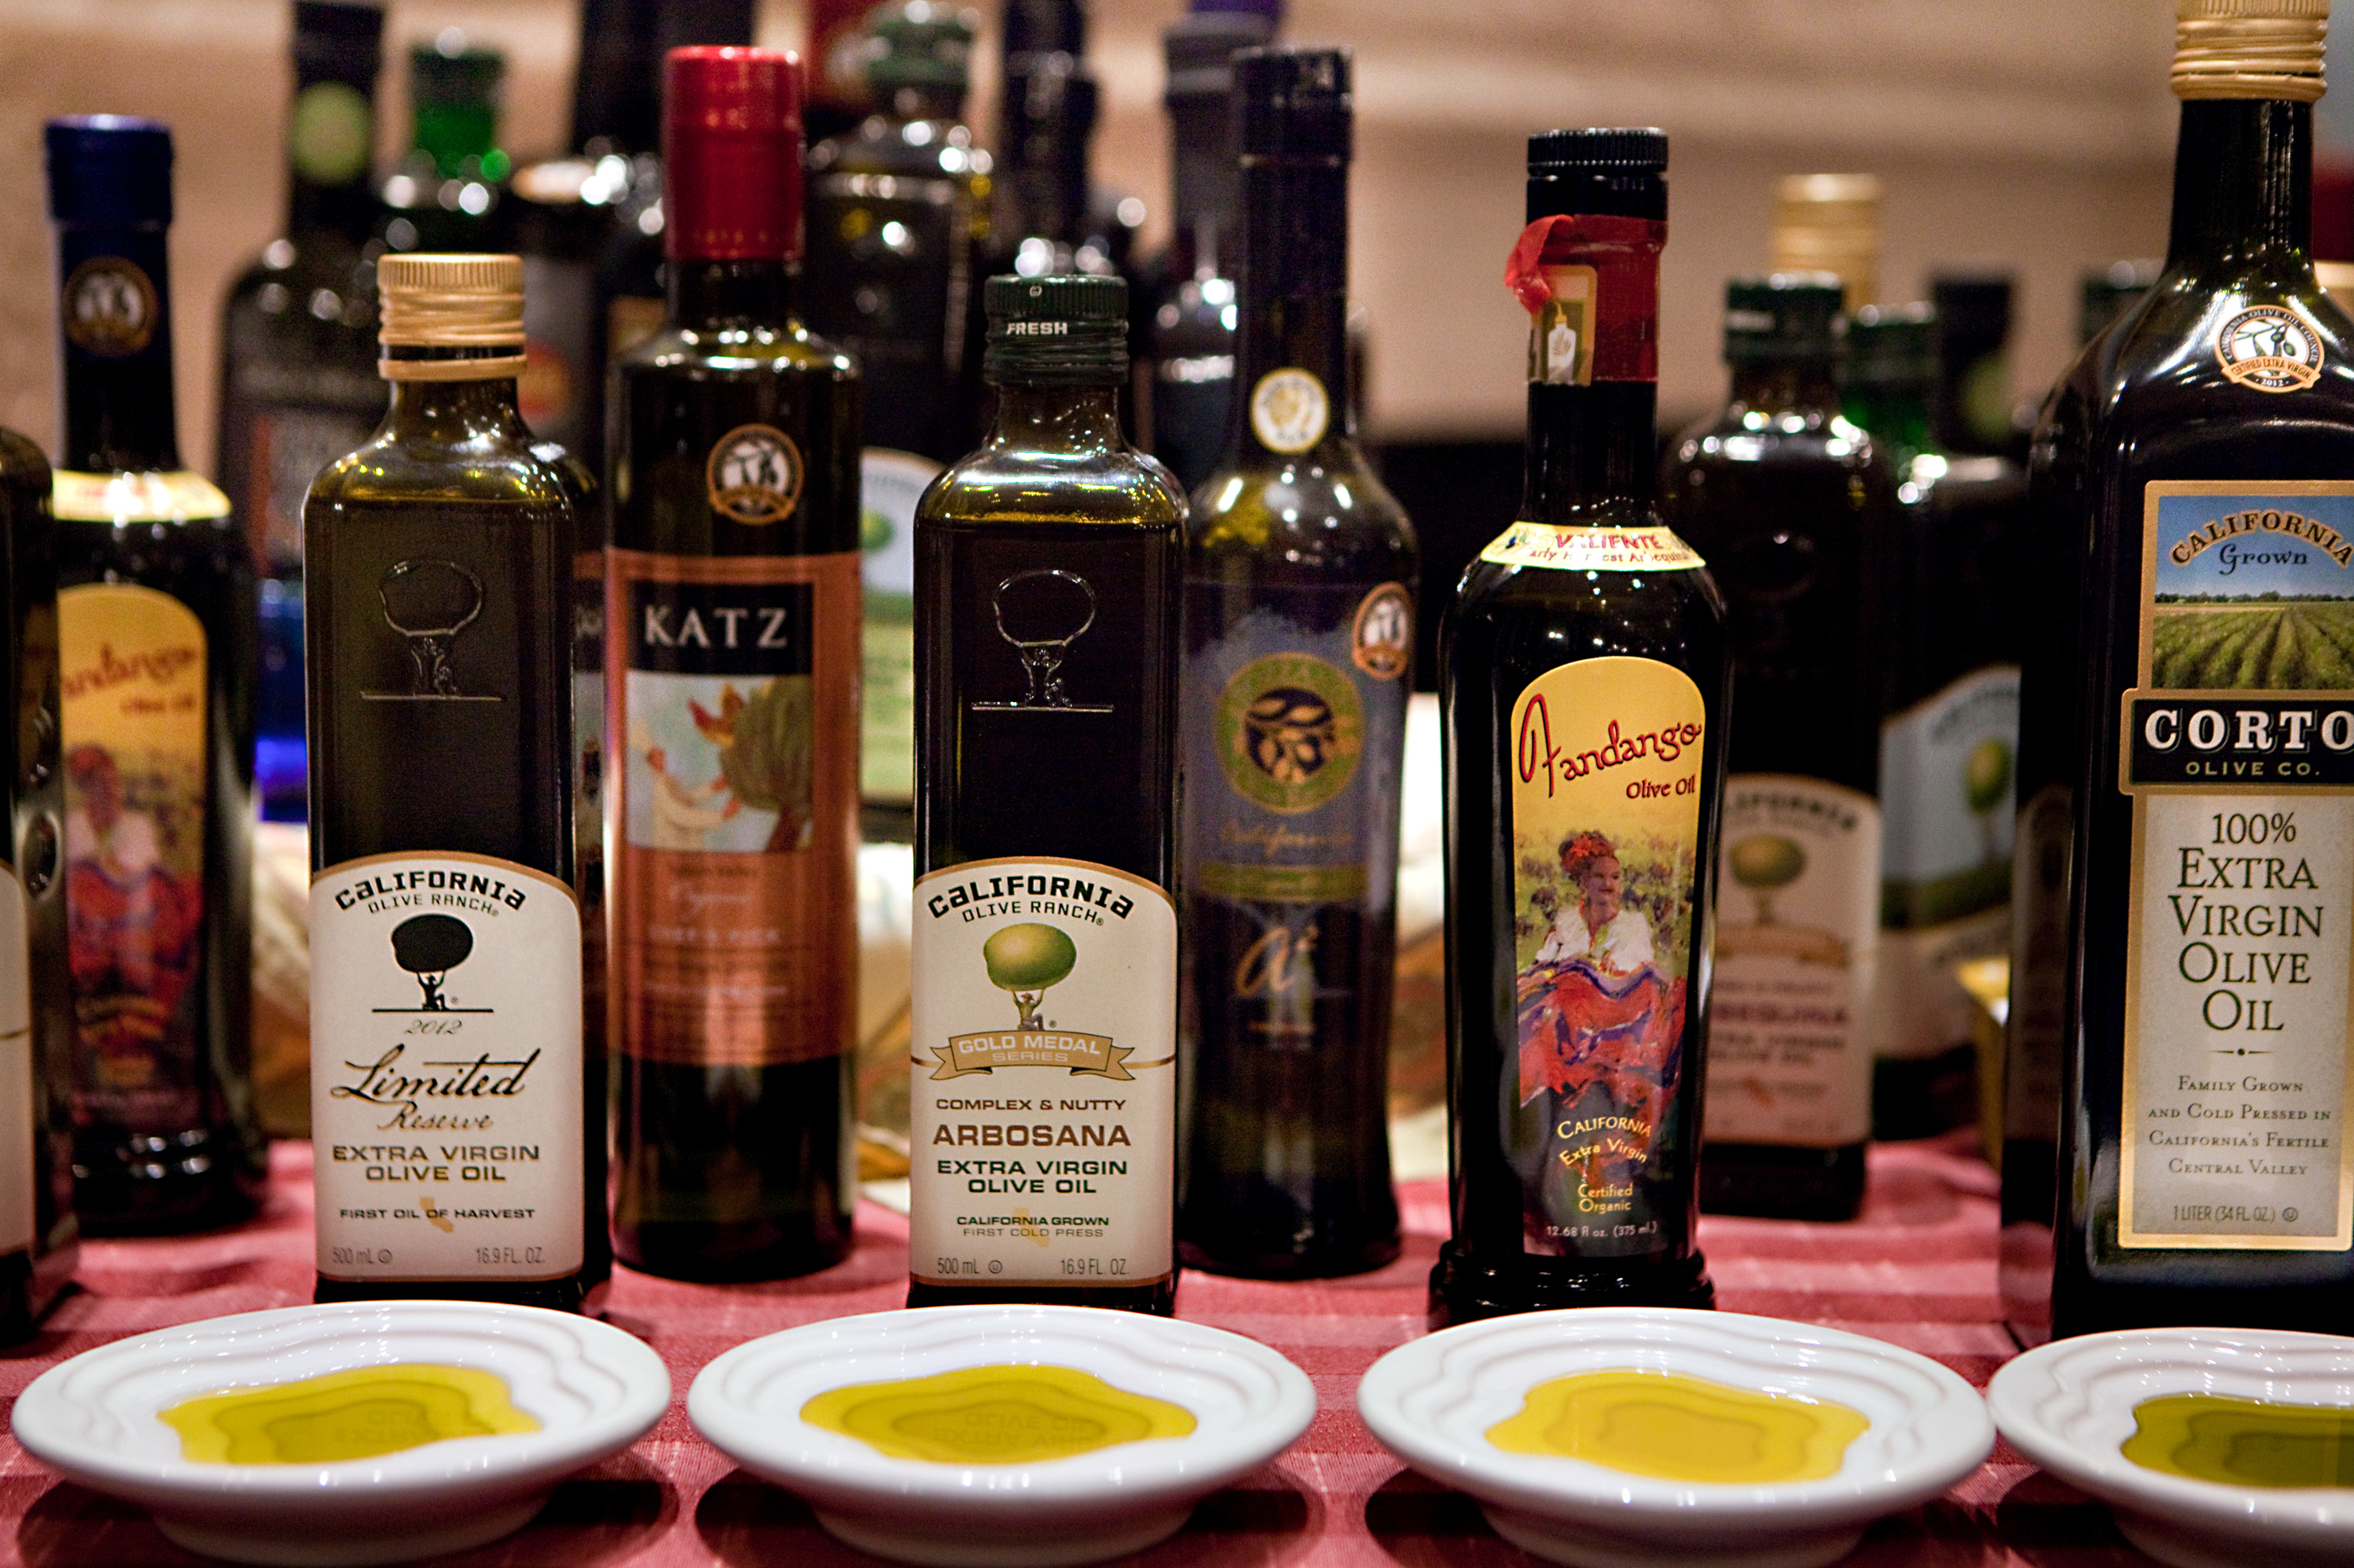 Surprise: Some of the best-tasting extra-virgin olive oils are now being produced domestically. Think Texas, California, Florida.